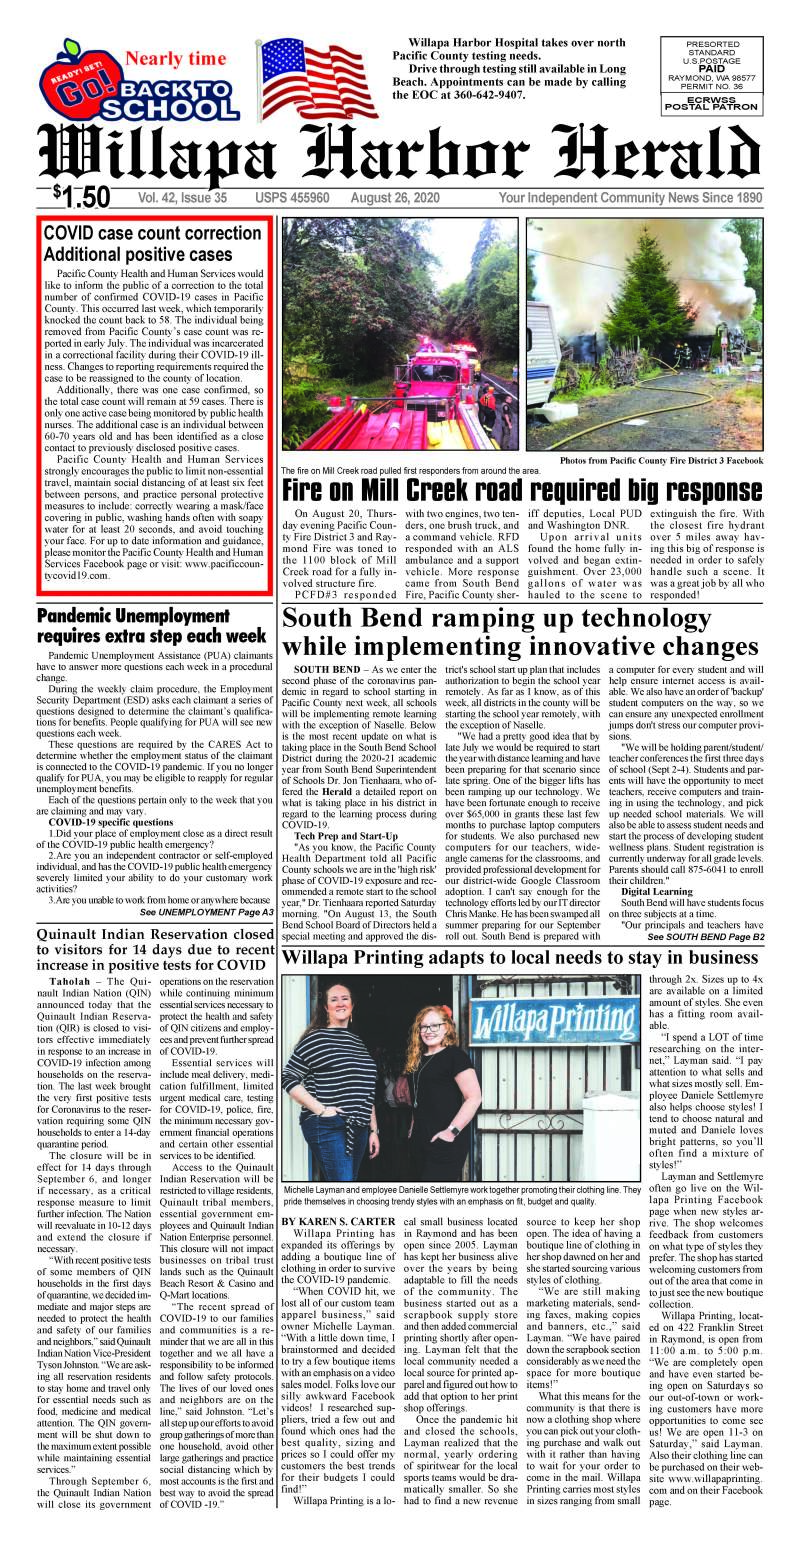 August 26, 2020 Willapa Harbor Herald and Pacific County Press